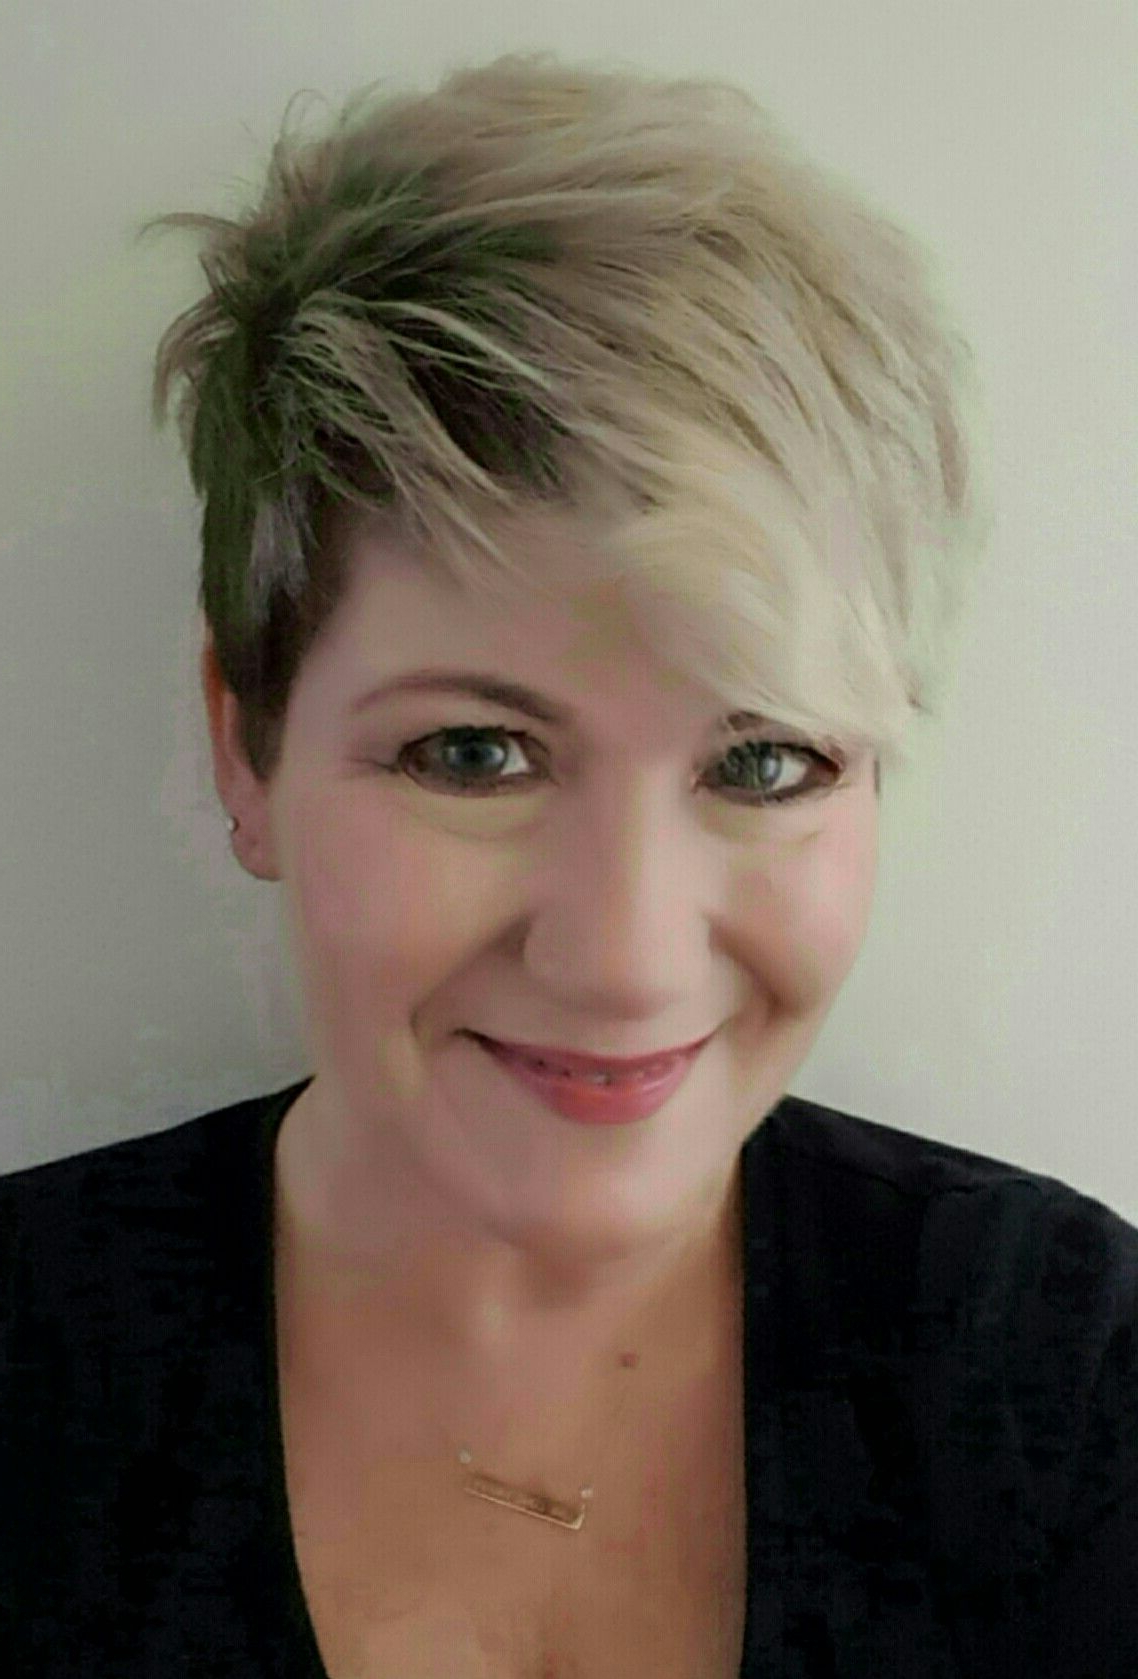 Undercut Pixie For Women Over 50! | Hair/beauty In 2018 | Pinterest For Pixie Undercut Hairstyles For Women Over (View 5 of 20)